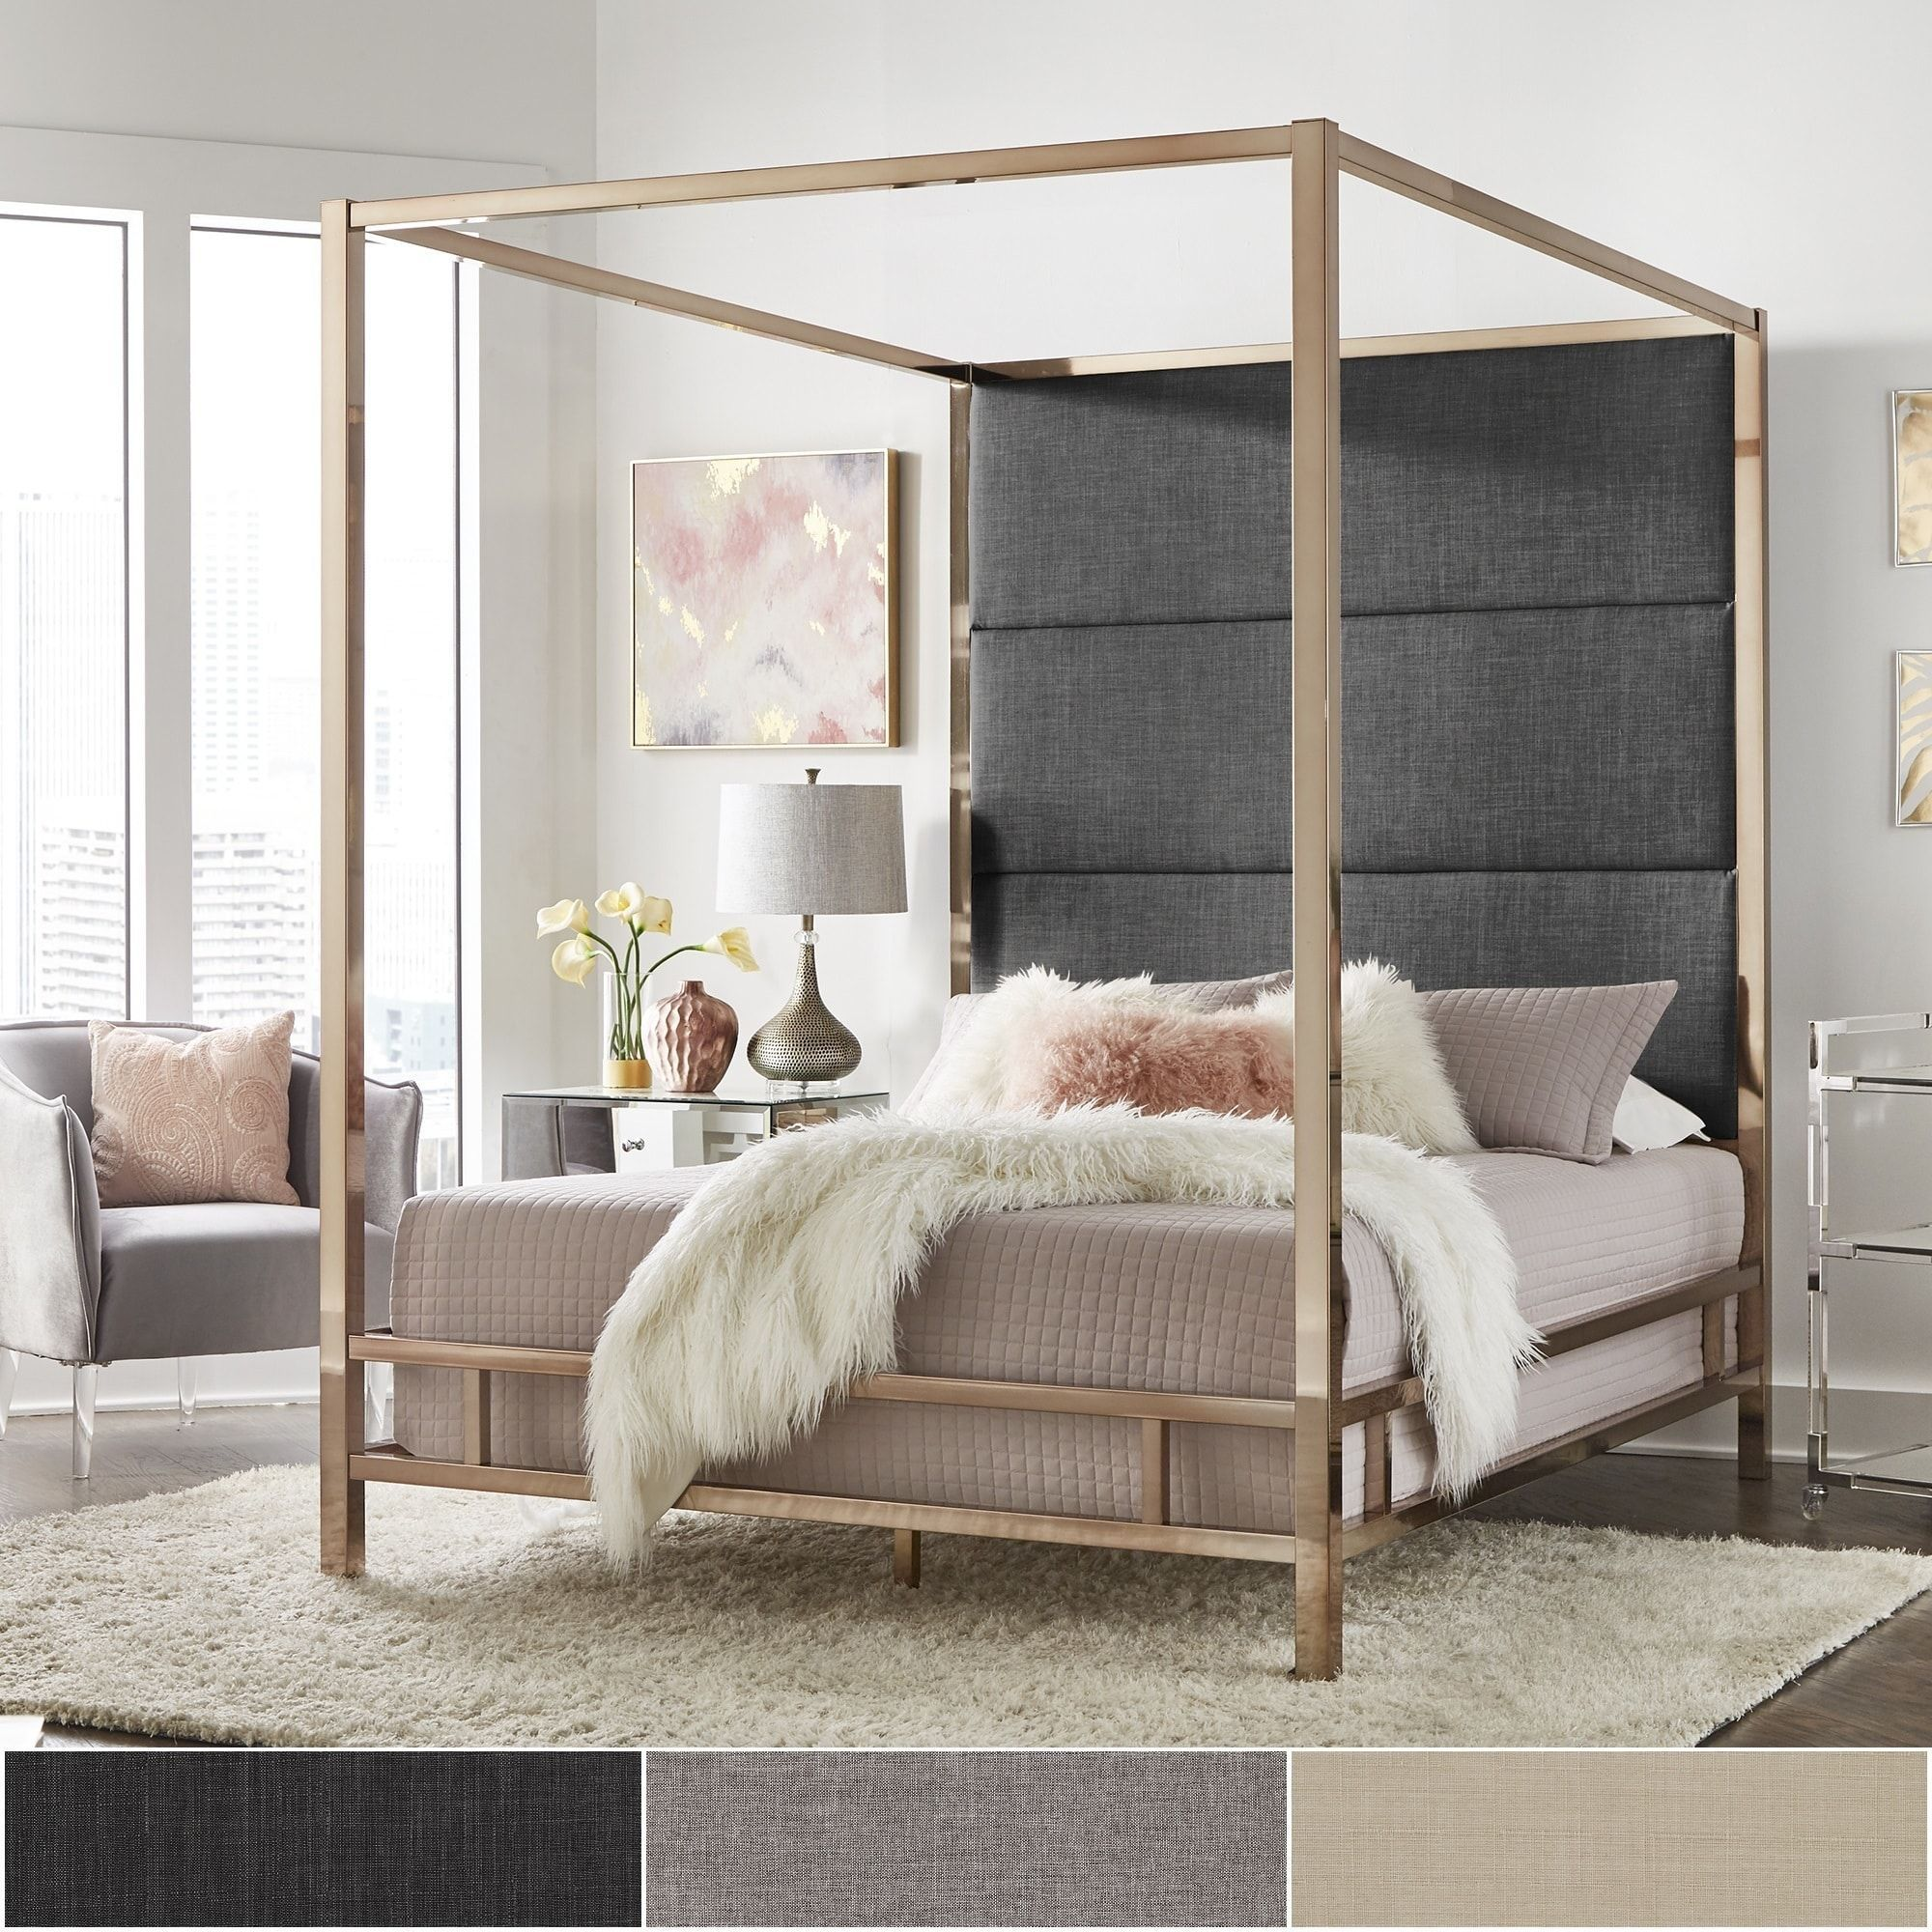 to wrought where brass antique for edmonton divine metal wire uncategorized white buy bedroom headboard full amazing furniture frame king mattress only headboards iron size gold wood queen do bed of kijiji large with frames brackets genius sale upholstered top canada black design